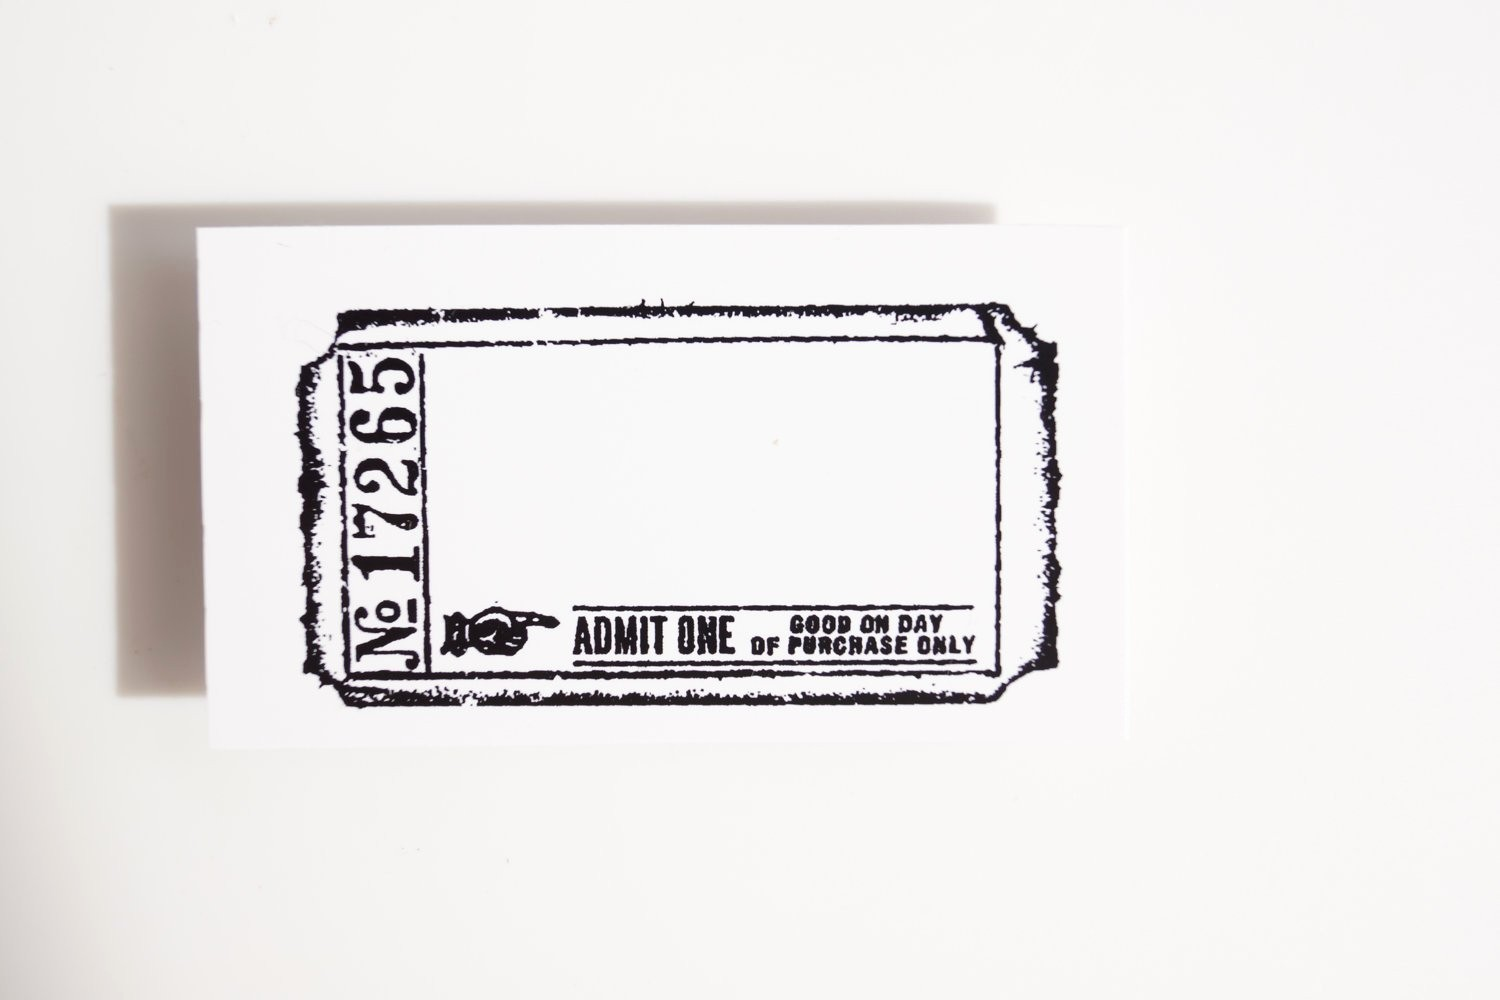 Blank Admit One Ticket Template Fresh Blank Admit E Ticket Stamp Rubber Cling Mounted Stamp